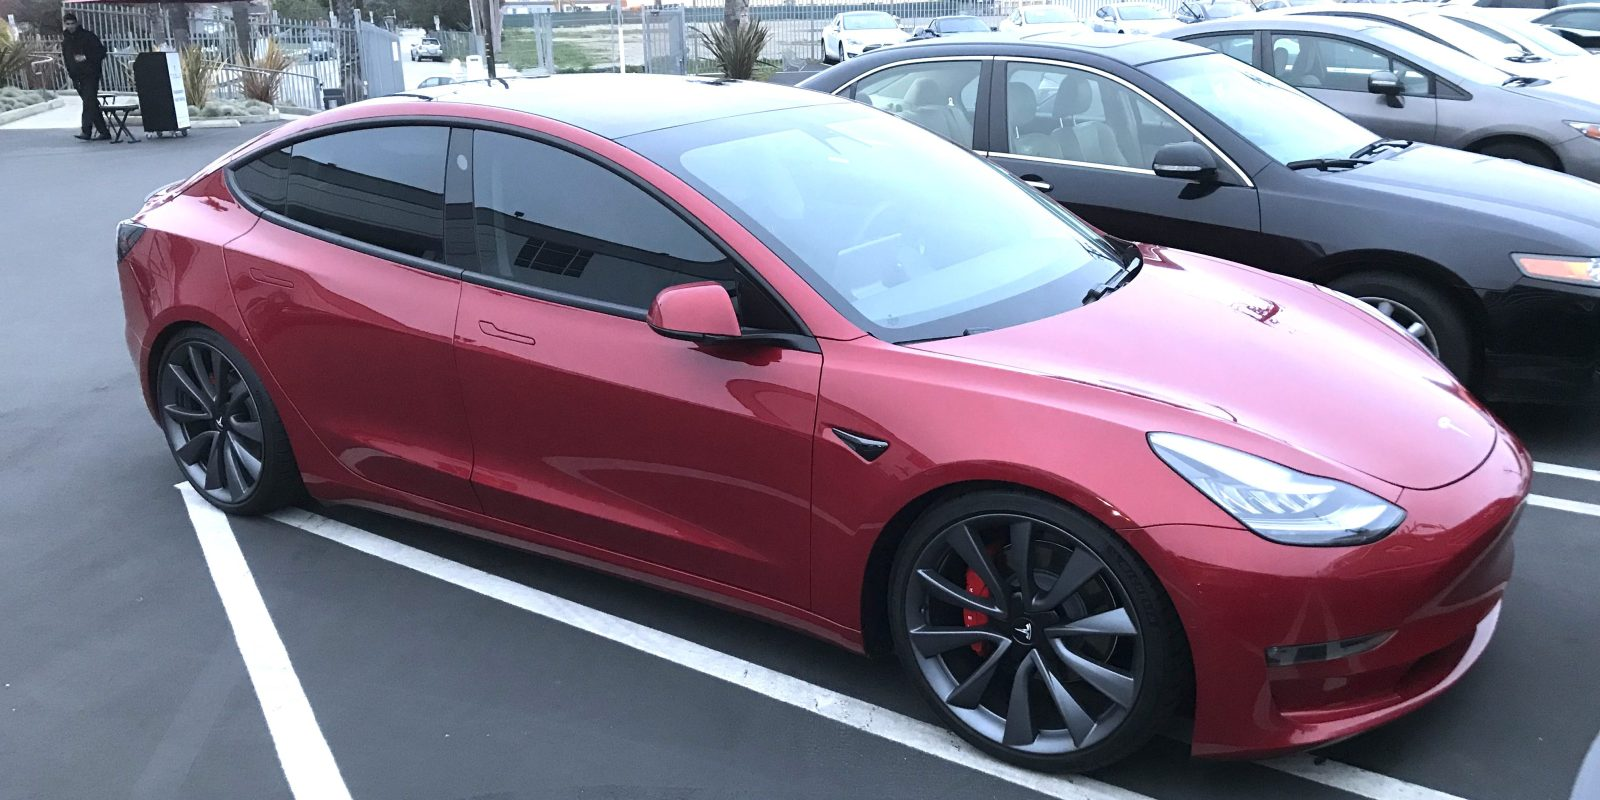 Tesla Claims That Model 3 Panel Gaps Have Improved By Nearly 40